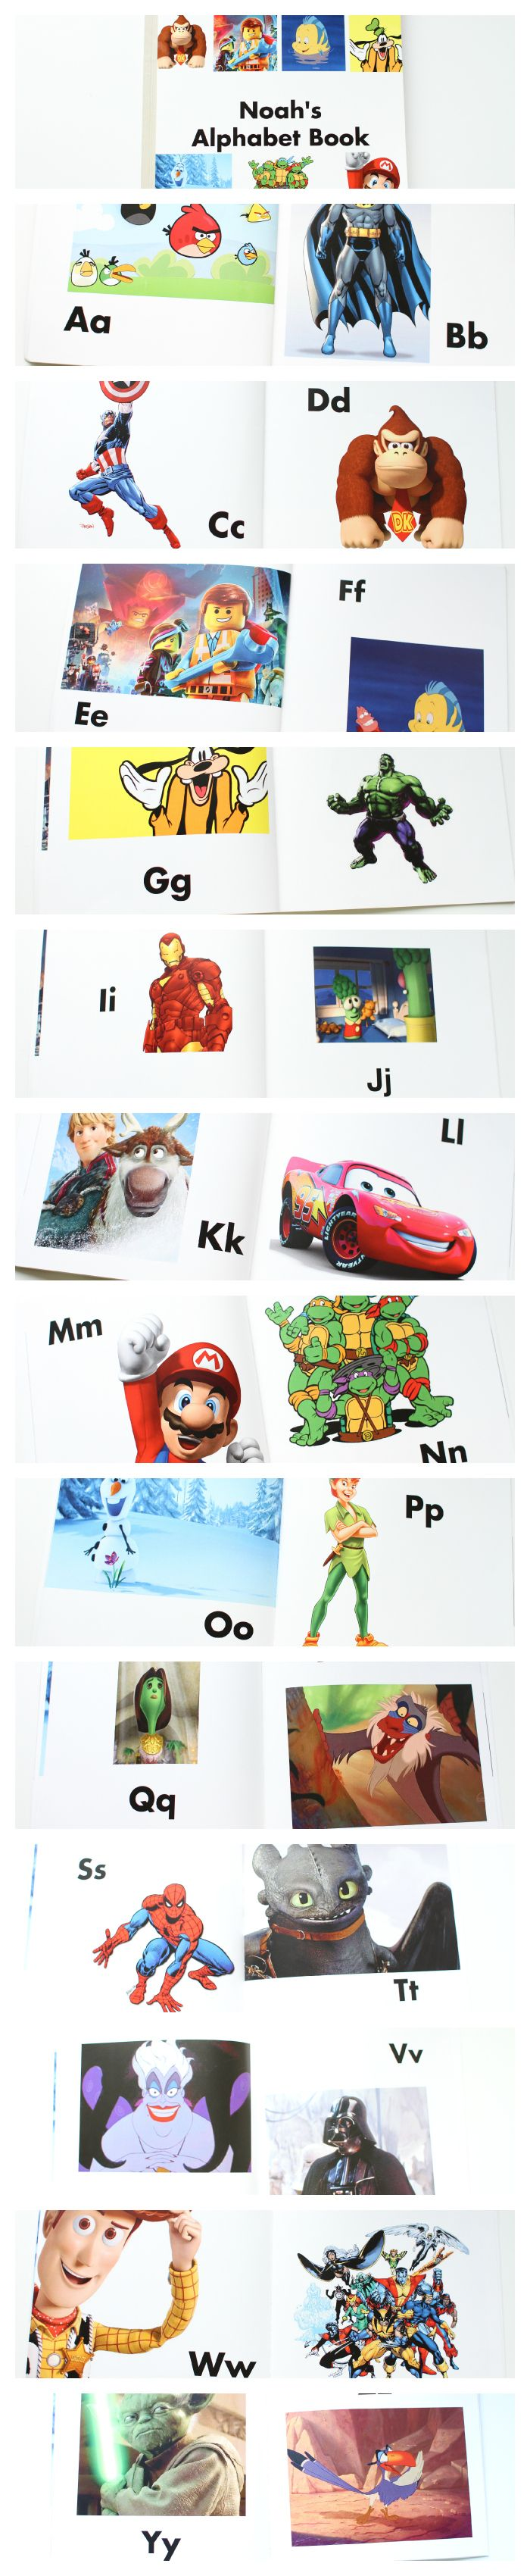 3 Letter Cartoon Characters : Best make a book ideas images on pinterest preschool